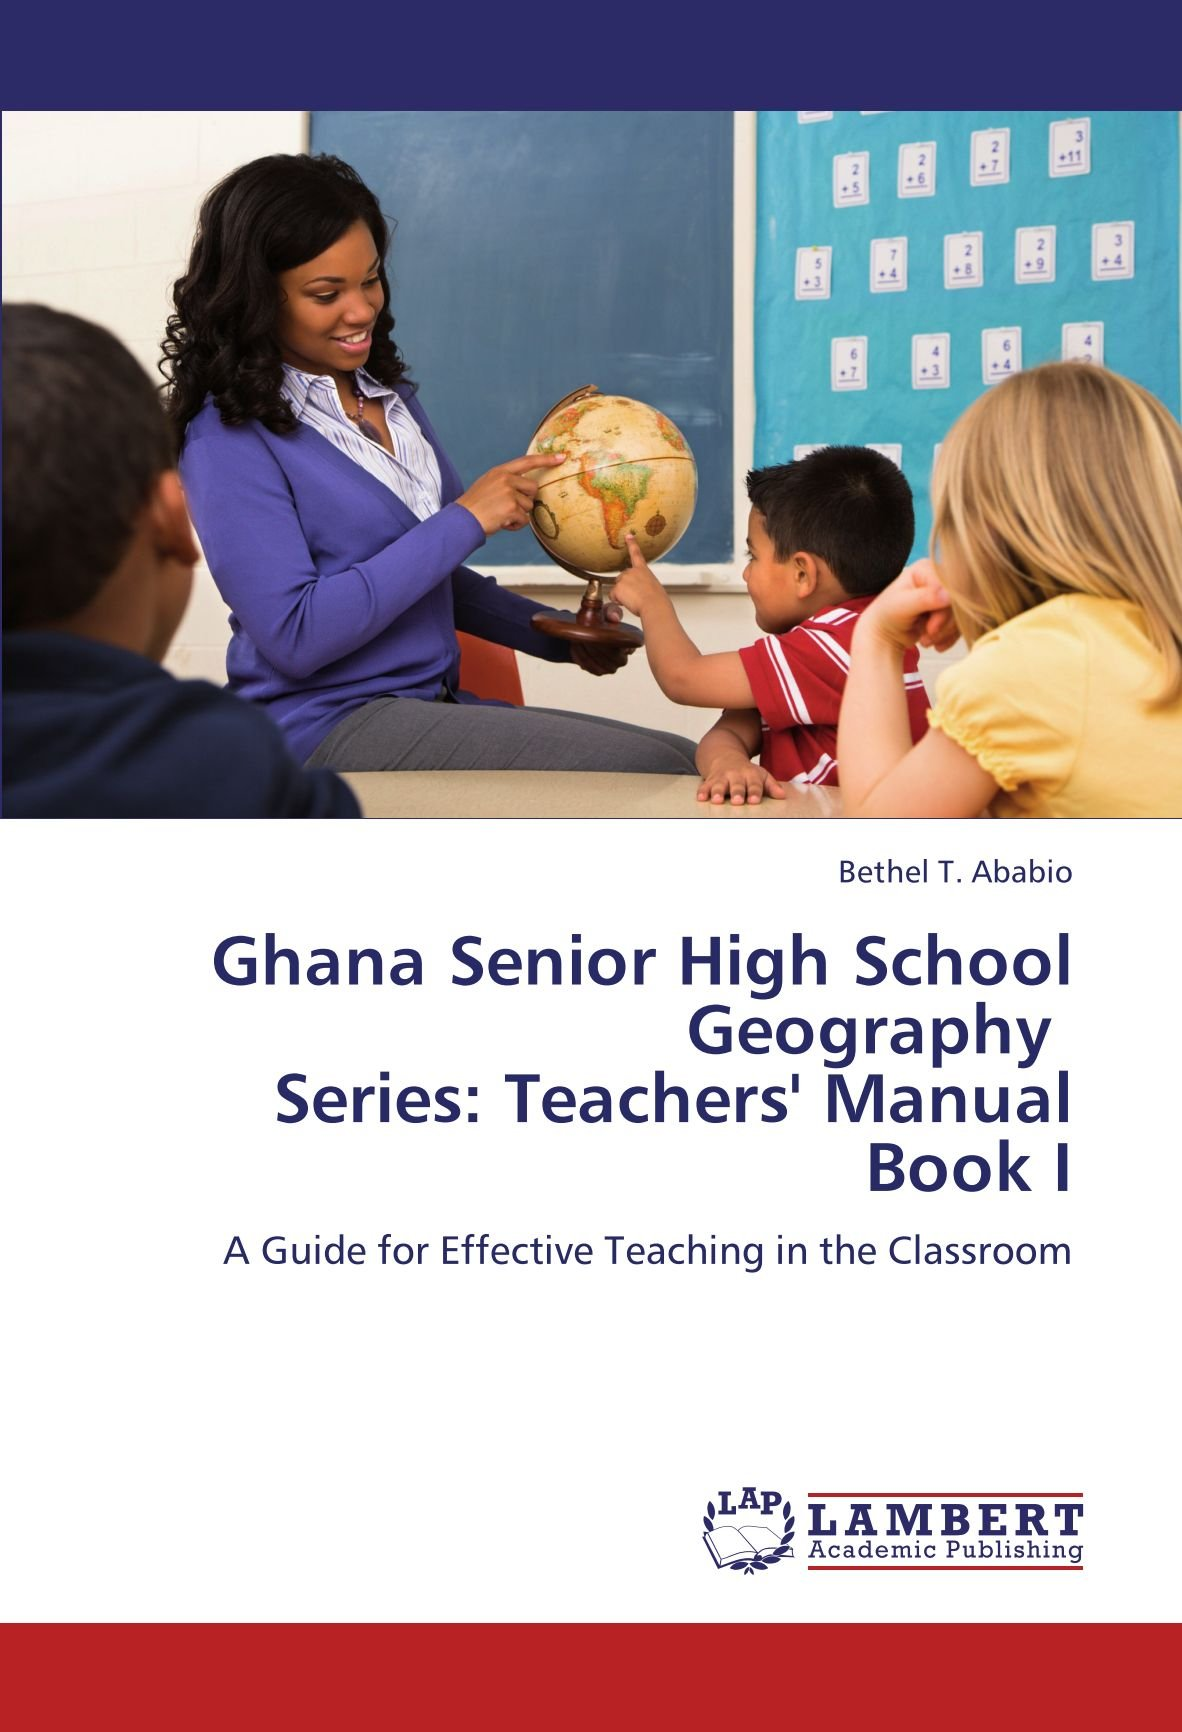 Download Ghana Senior High School Geography   Series: Teachers' Manual Book I: A Guide for Effective Teaching in the Classroom PDF